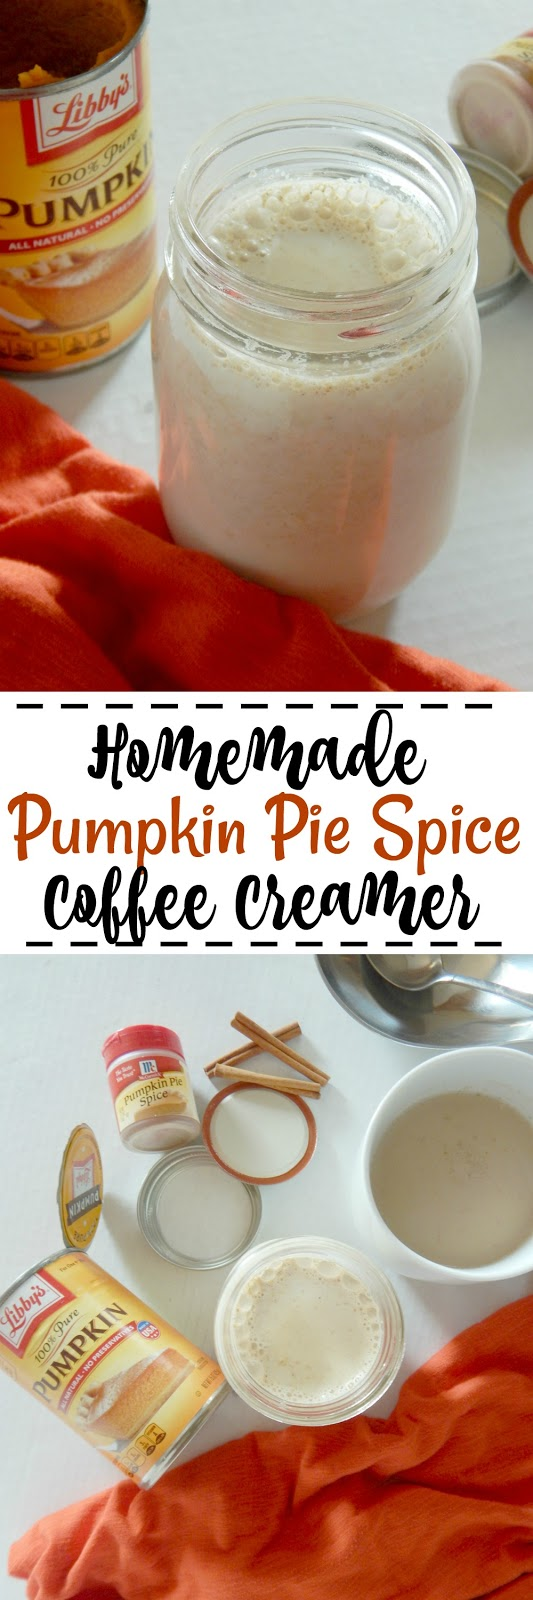 Homemade Pumpkin Pie Spice Coffee Creamer...a delicious, Fall-spiced coffee creamer, made in less than 10 minutes! (sweetandsavoryfood.com)